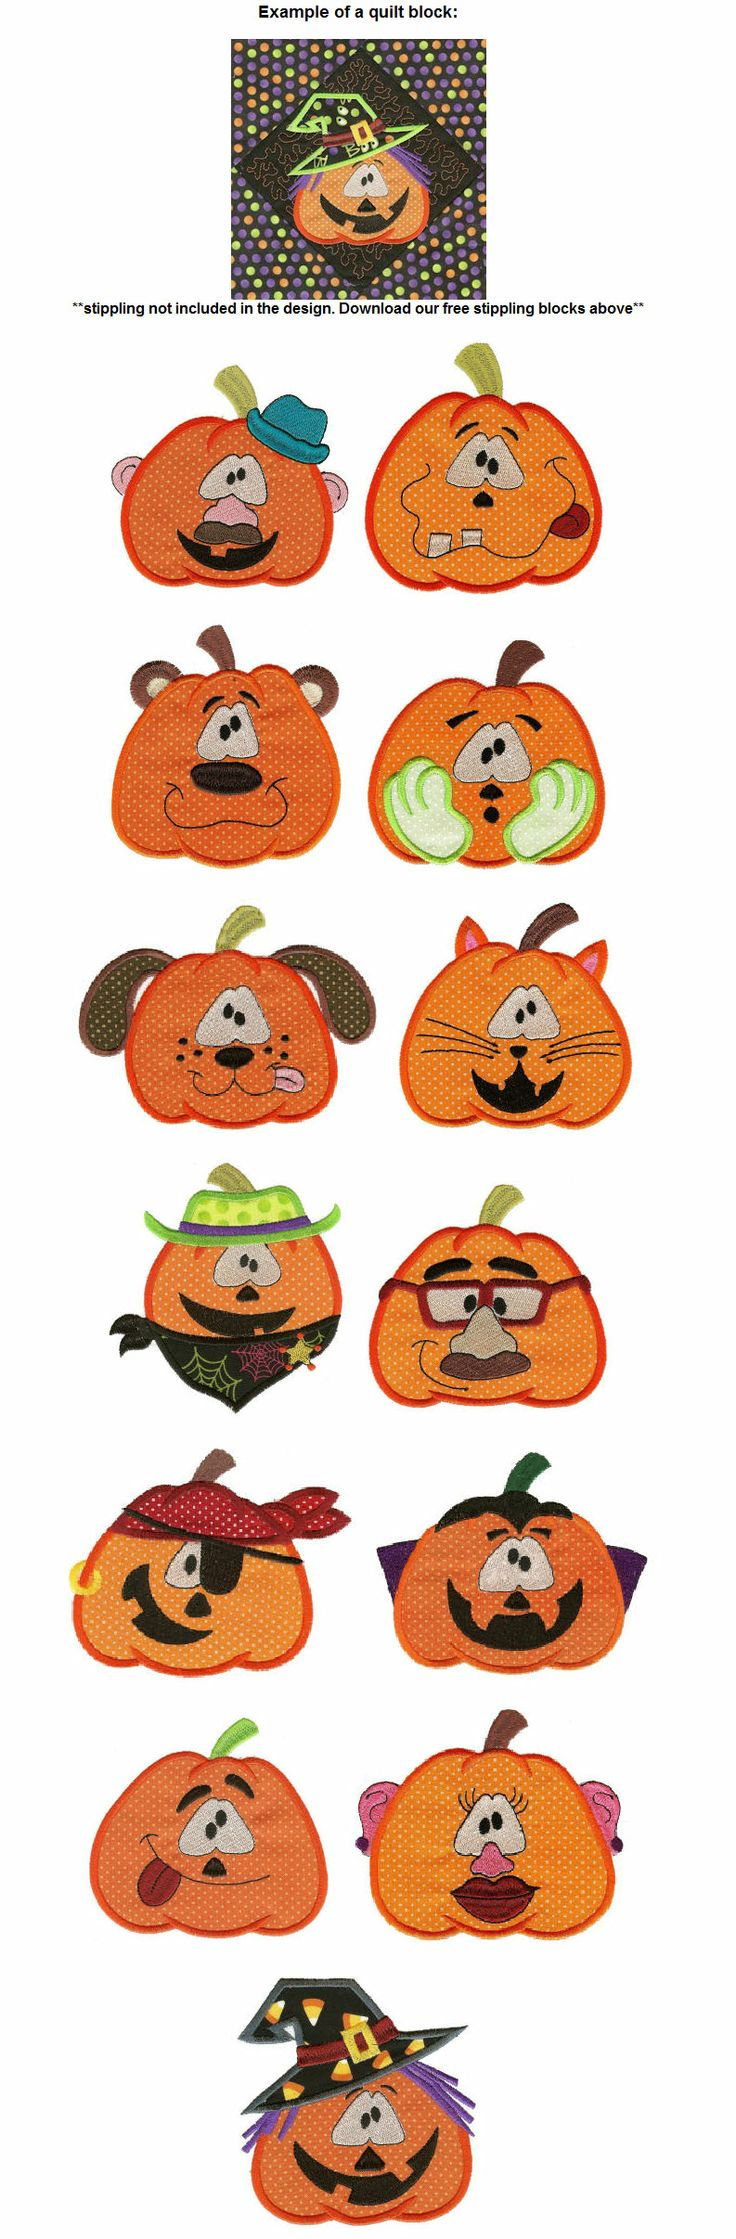 Pumpkin Head Applique from JuJu designs. Good for making a quilt block and example is on this page. I have these designs.